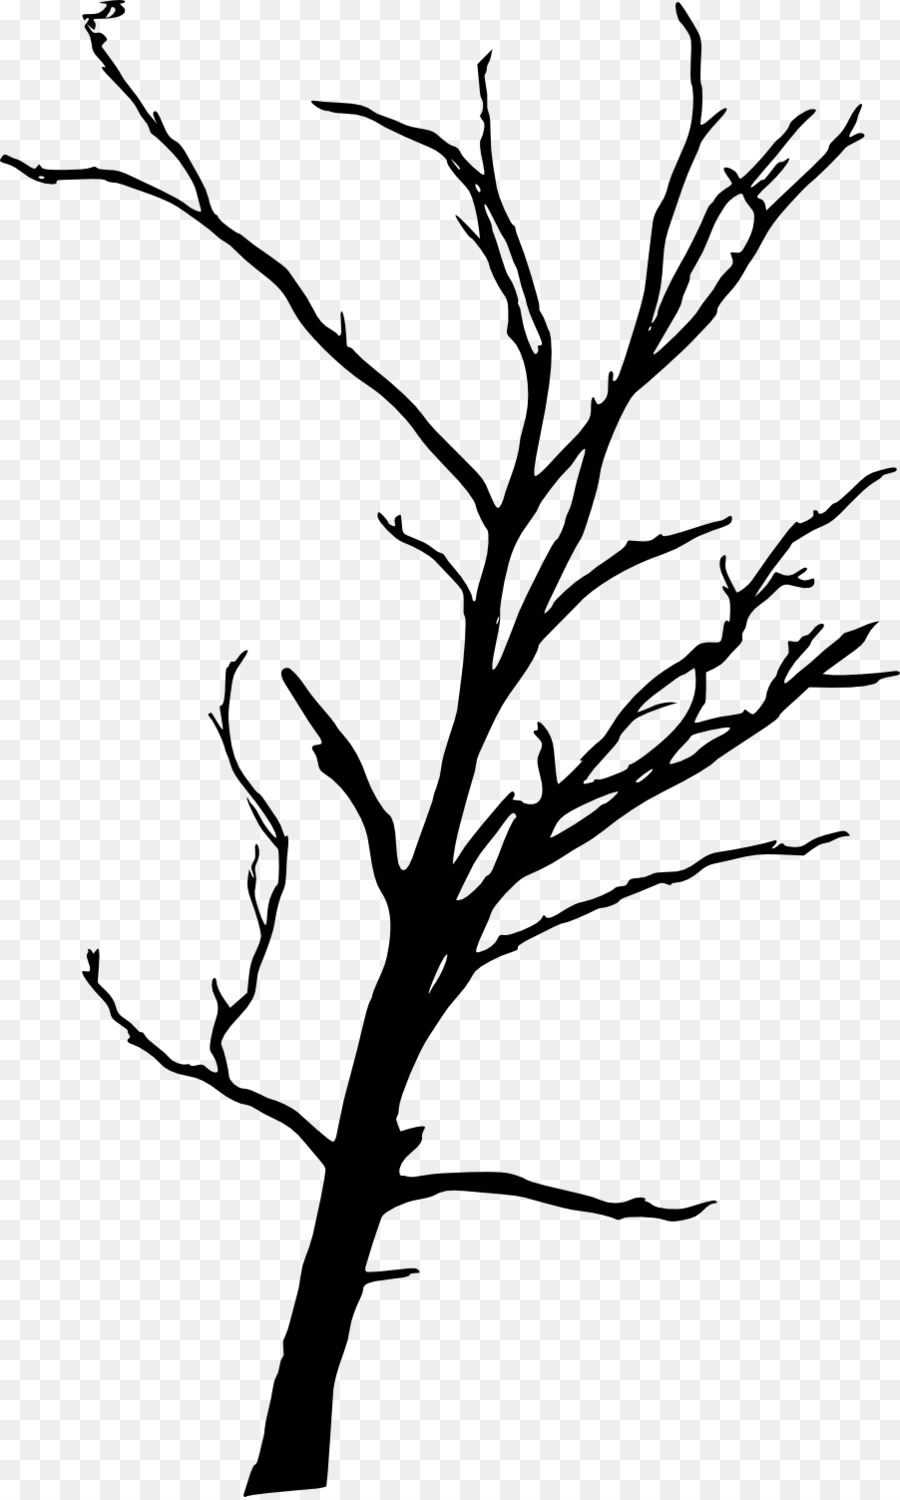 tree branch woody plant clip art dead tree png download 902 1500 rh kisspng com